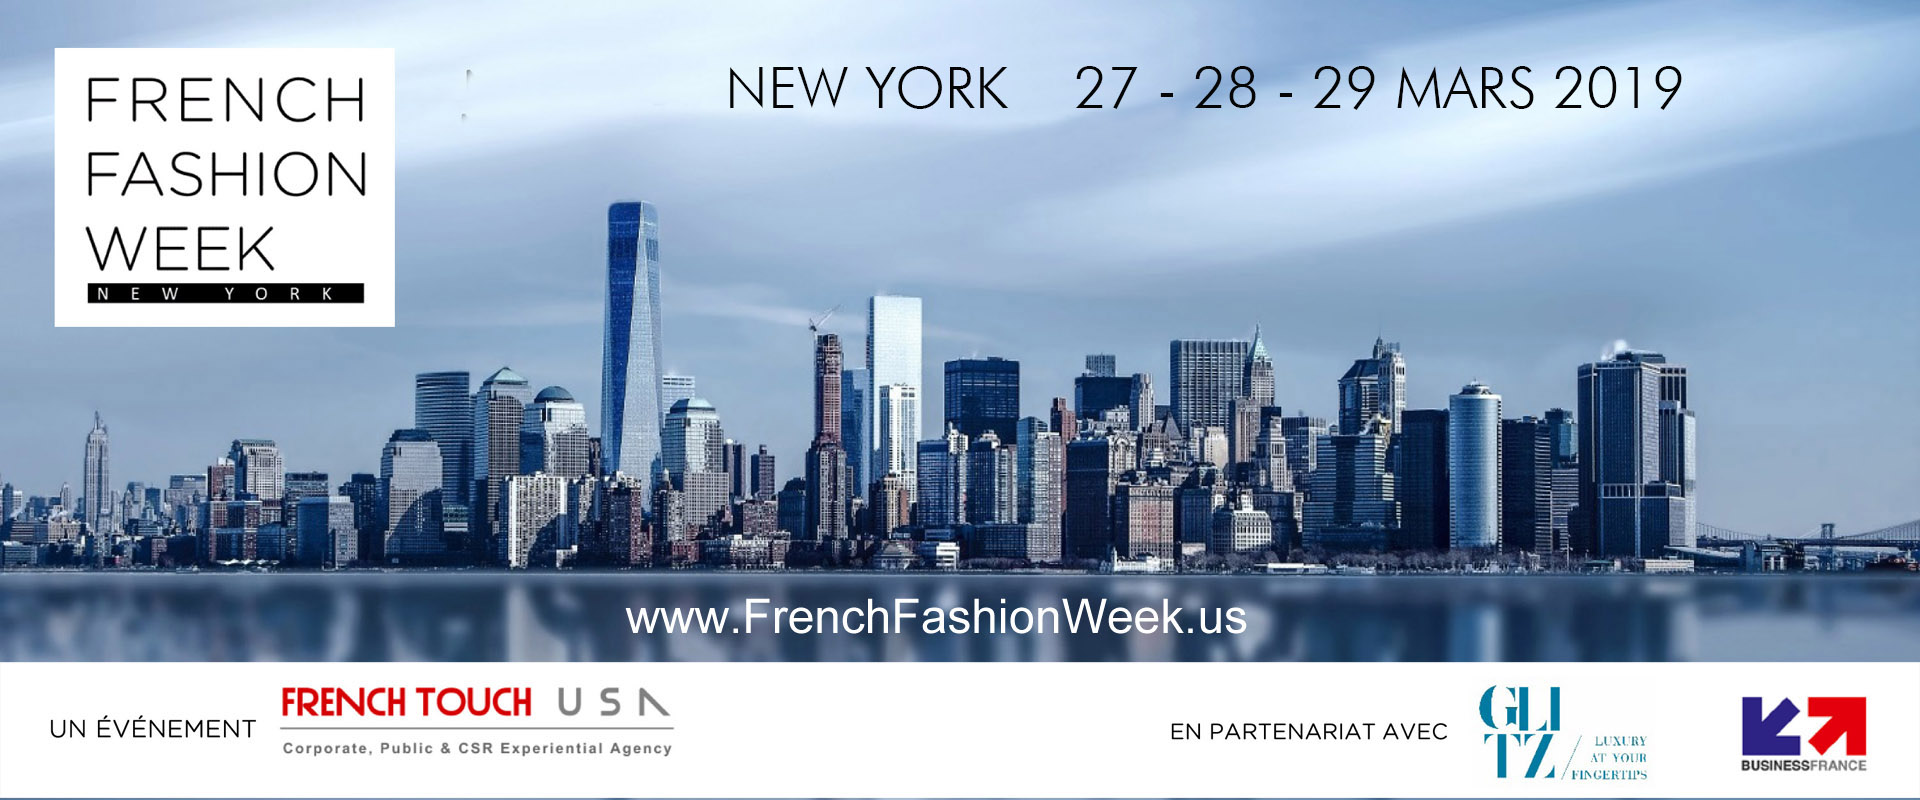 French Fashion Week